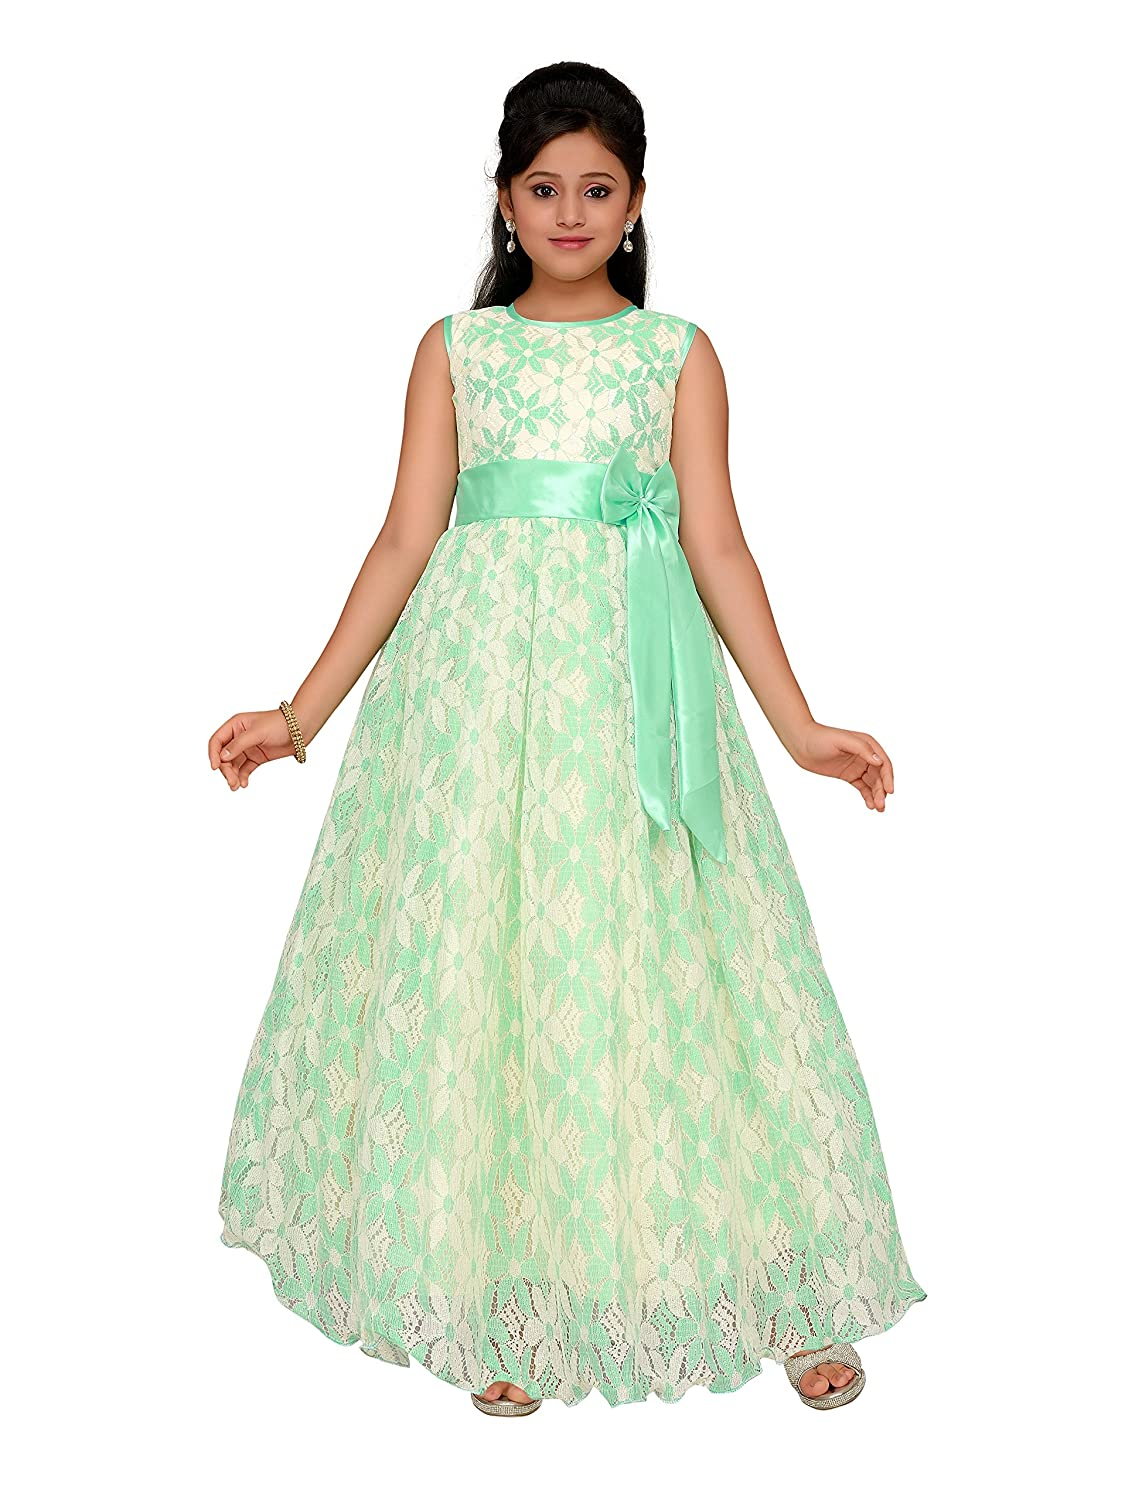 Adiva Girls Indian Party Wear Gown Dress for Kids: Amazon.co.uk: Clothing